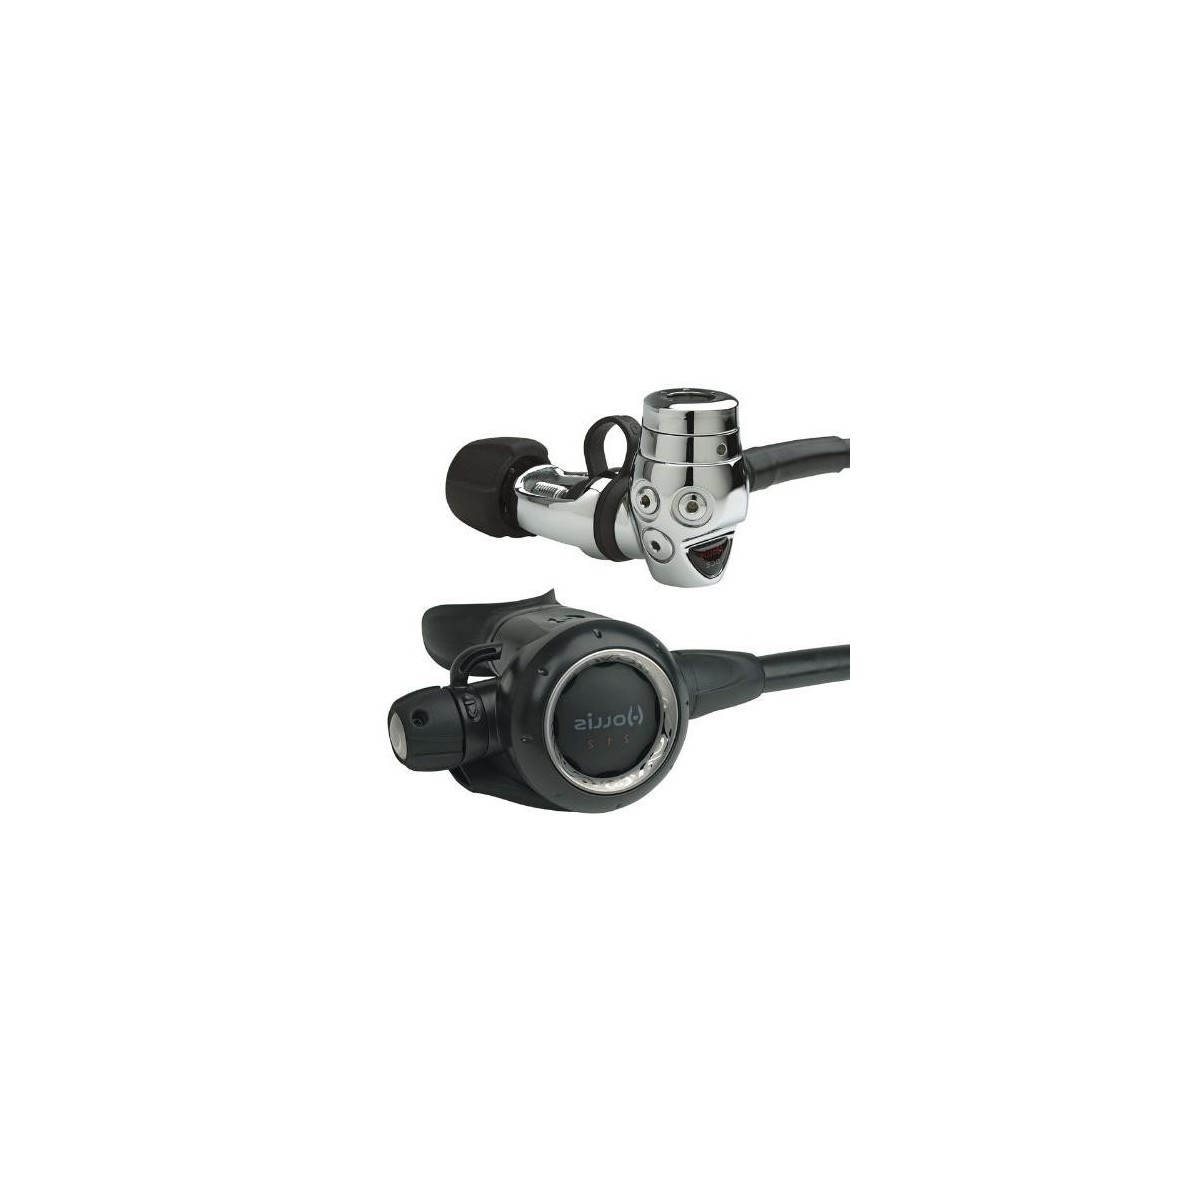 Hollis 212- DC2 Yoke Scuba Diving Regulator